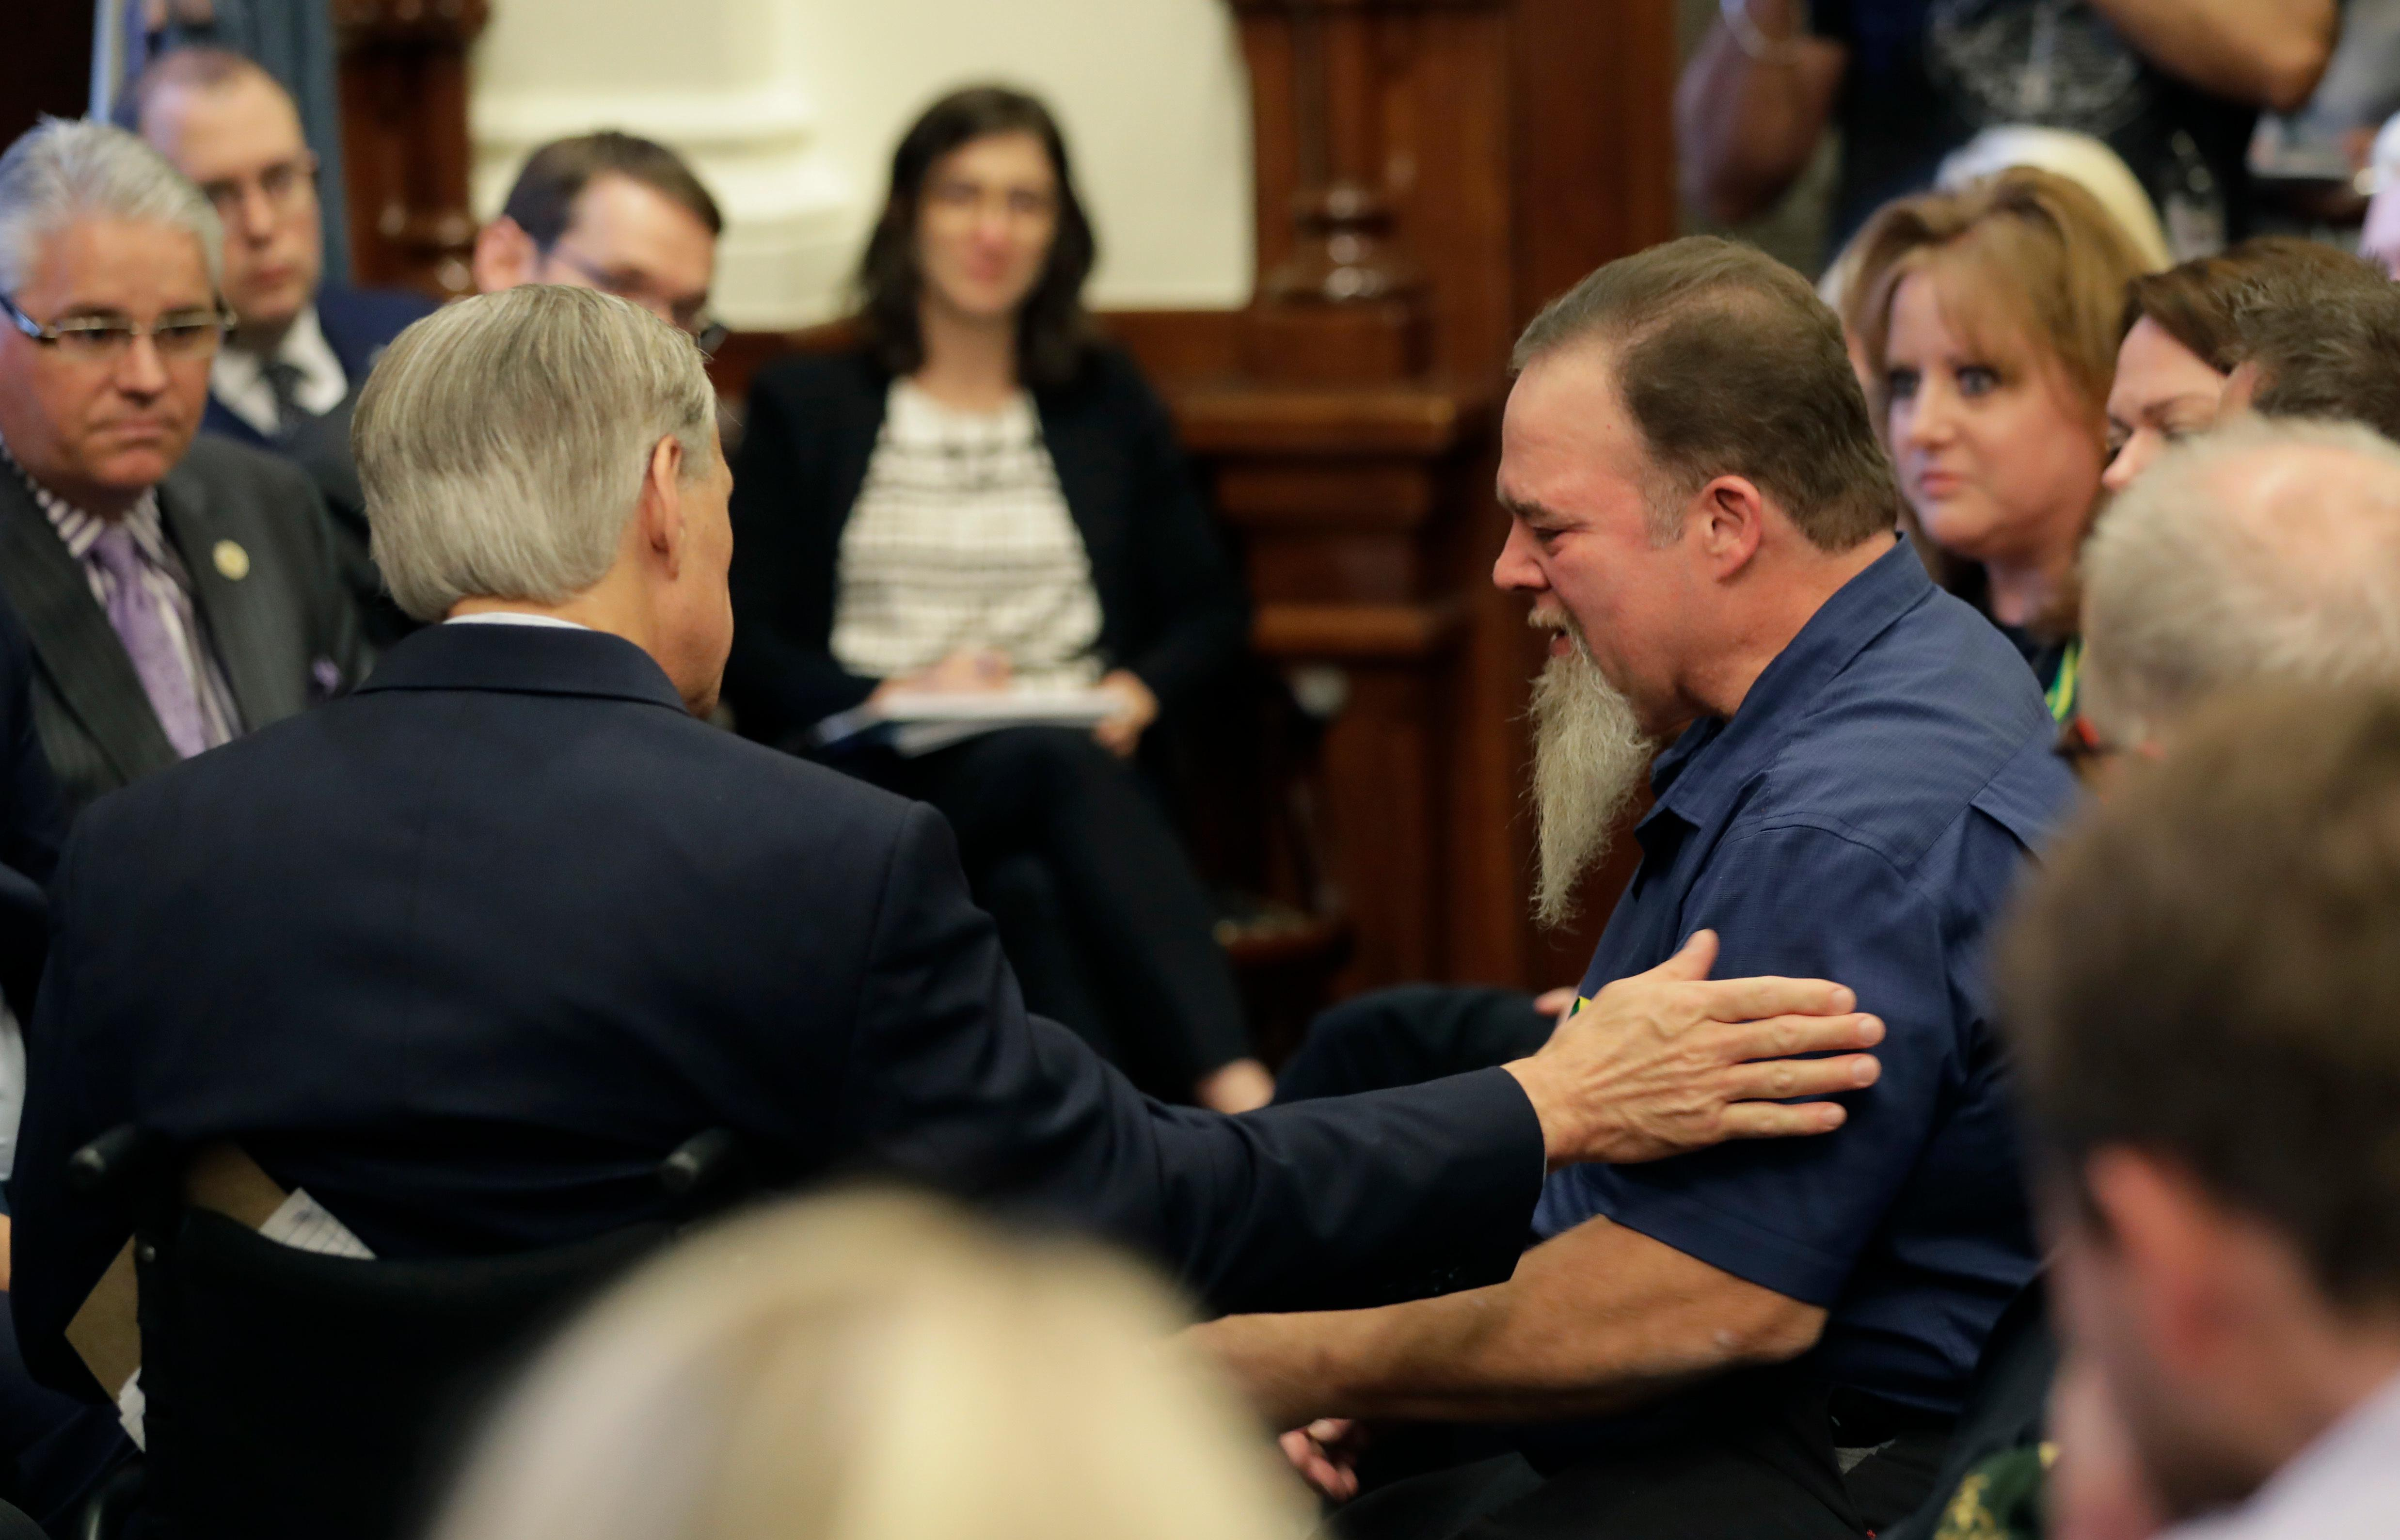 Texas Gov. Gregg Abbott, left, reached out to a man holding back tear as he speaks during a roundtable discussion in Austin, Texas, Thursday, May 24, 2018, to address safety and security at Texas schools in the wake of the shooting at Santa Fe, Texas. Thursday's roundtable included victims, students, families and educators from the Santa Fe, Alpine and Sutherland Springs communities. (AP Photo/Eric Gay)